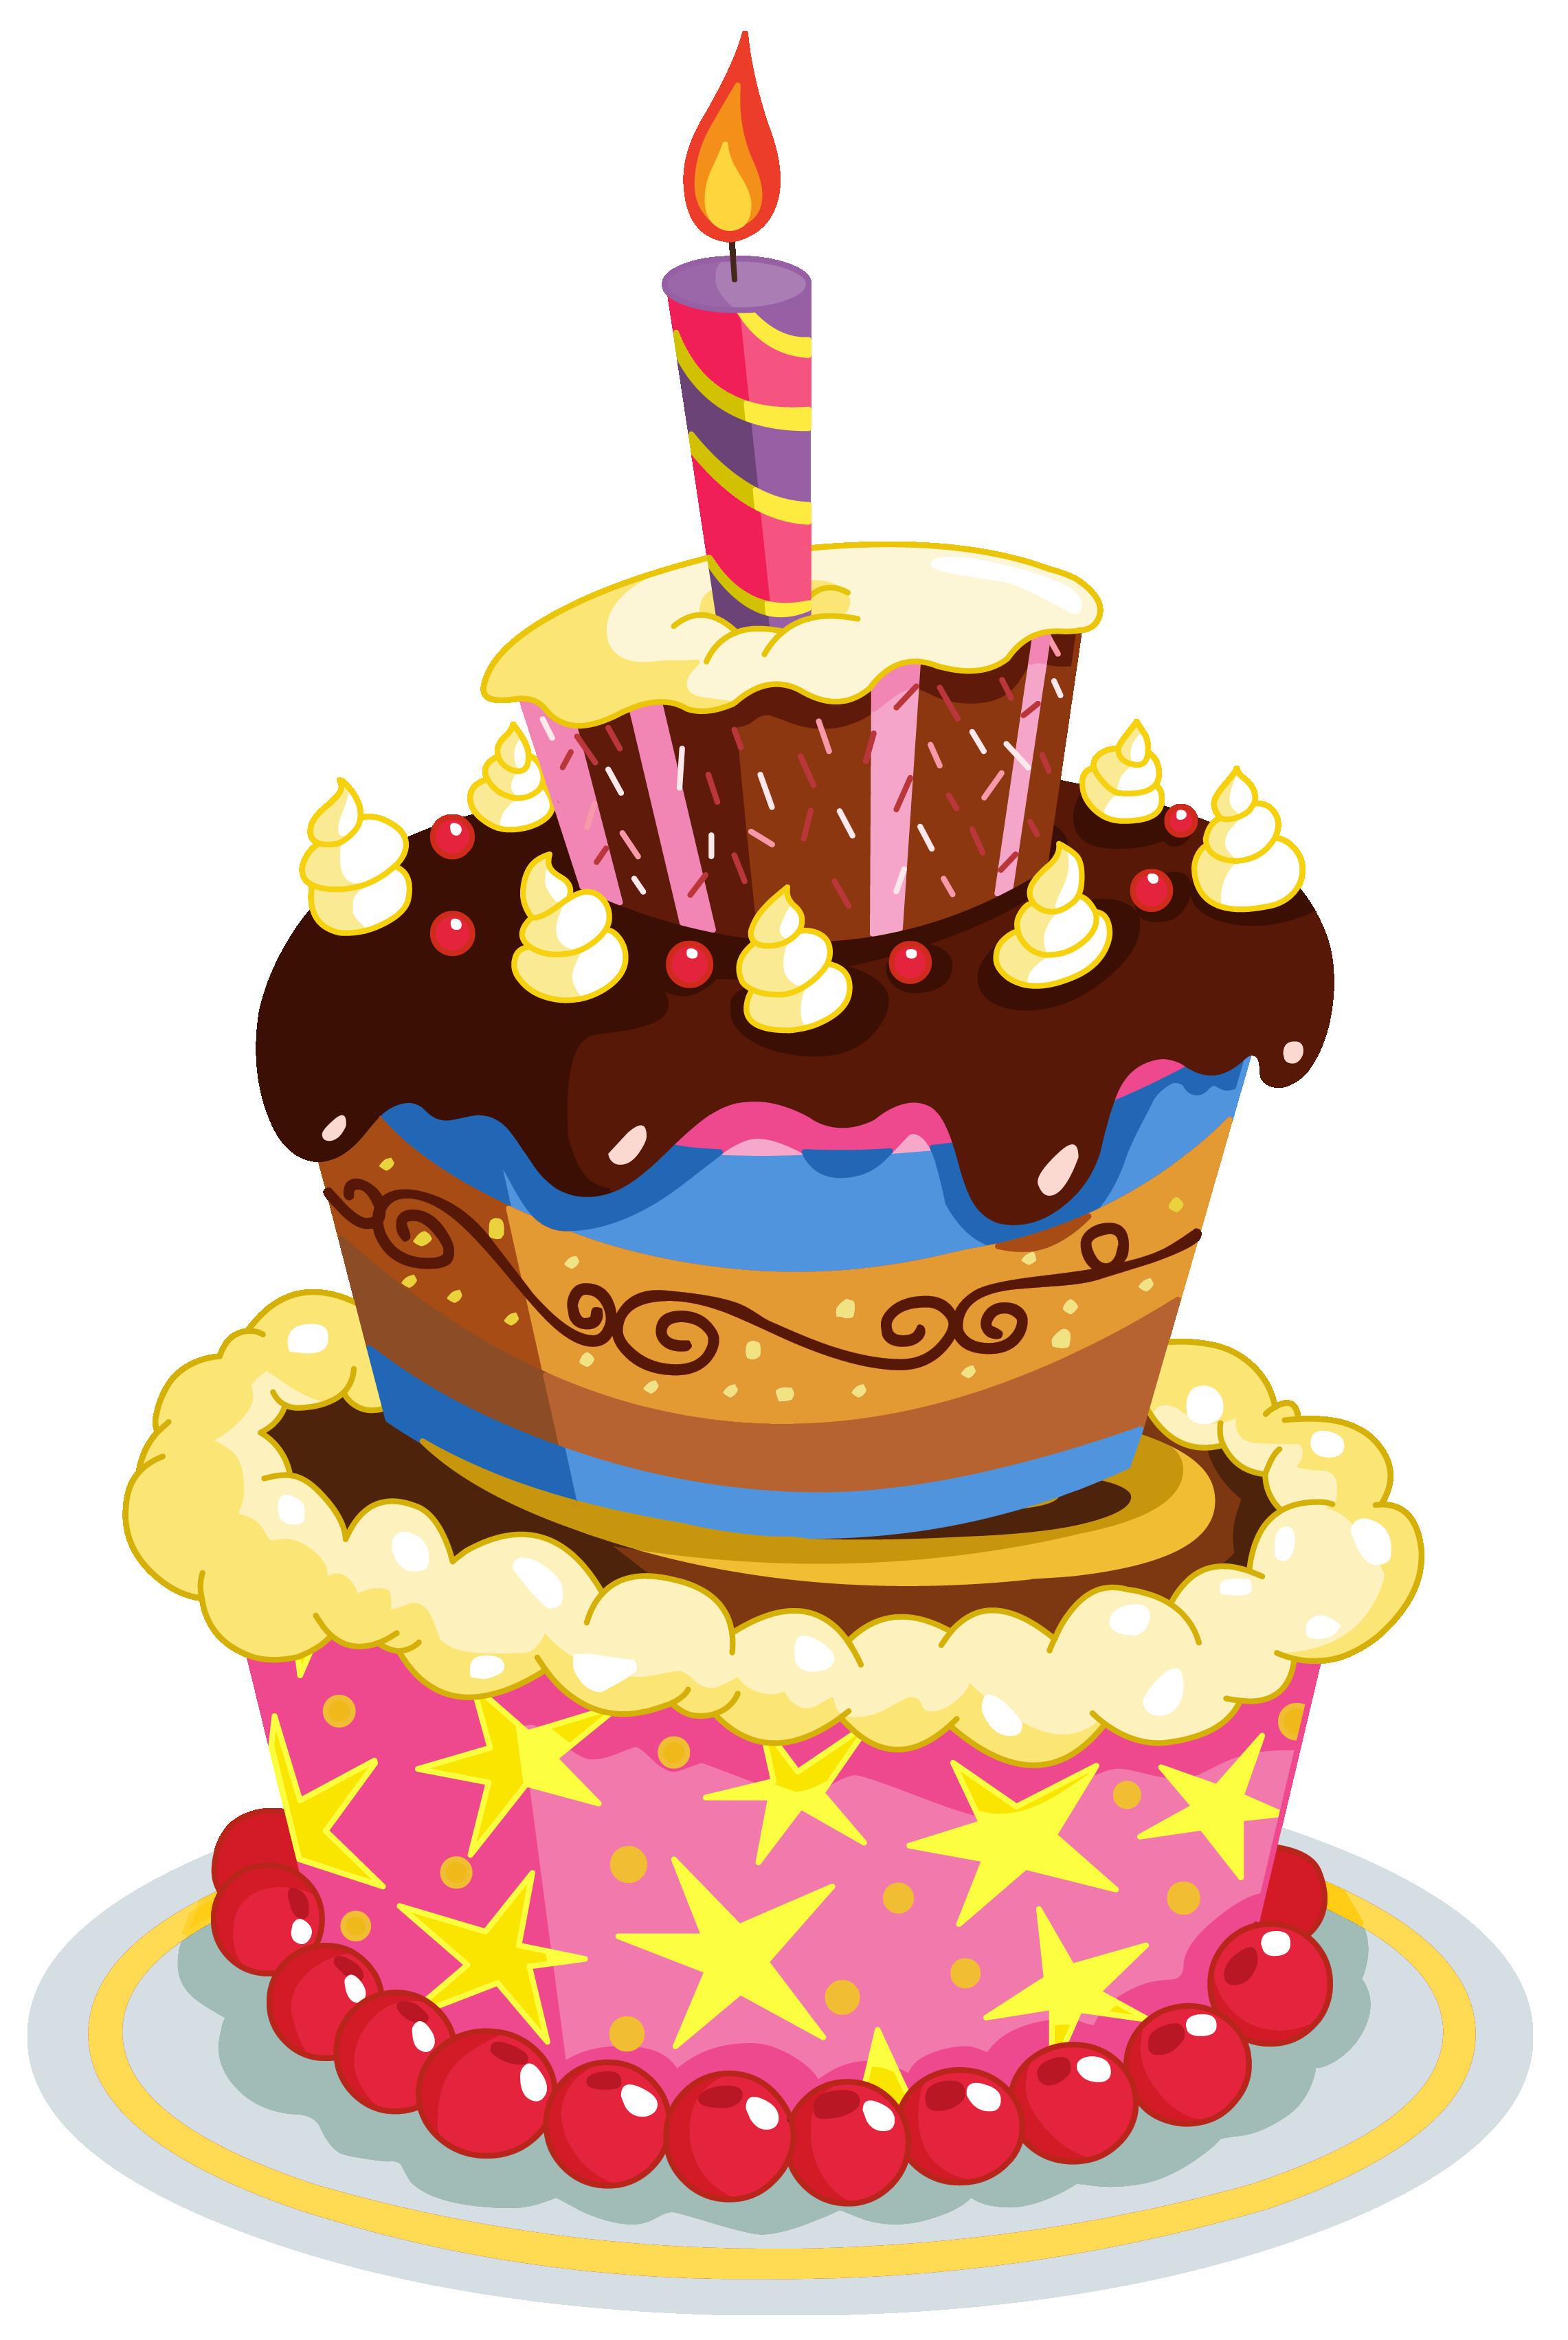 Best ideas about Clip Art Birthday Cake . Save or Pin BIRTHDAY CAKE CLIPART Fomanda Gasa Now.